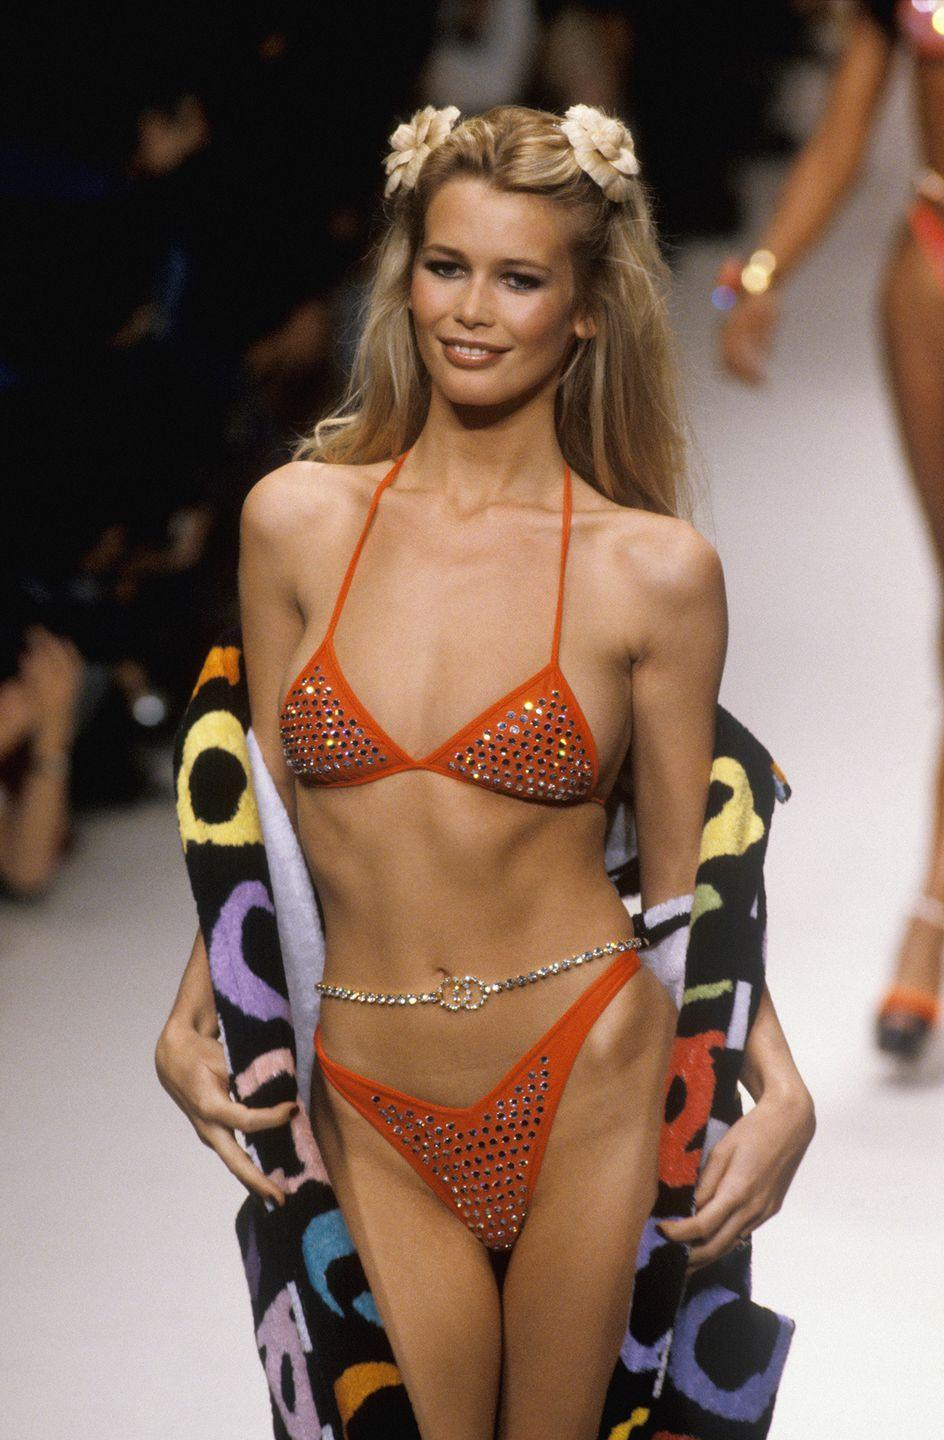 <p>Things got much more sparkly in 1994, when rhinestones became a popular embellishment for bathing suits.</p>